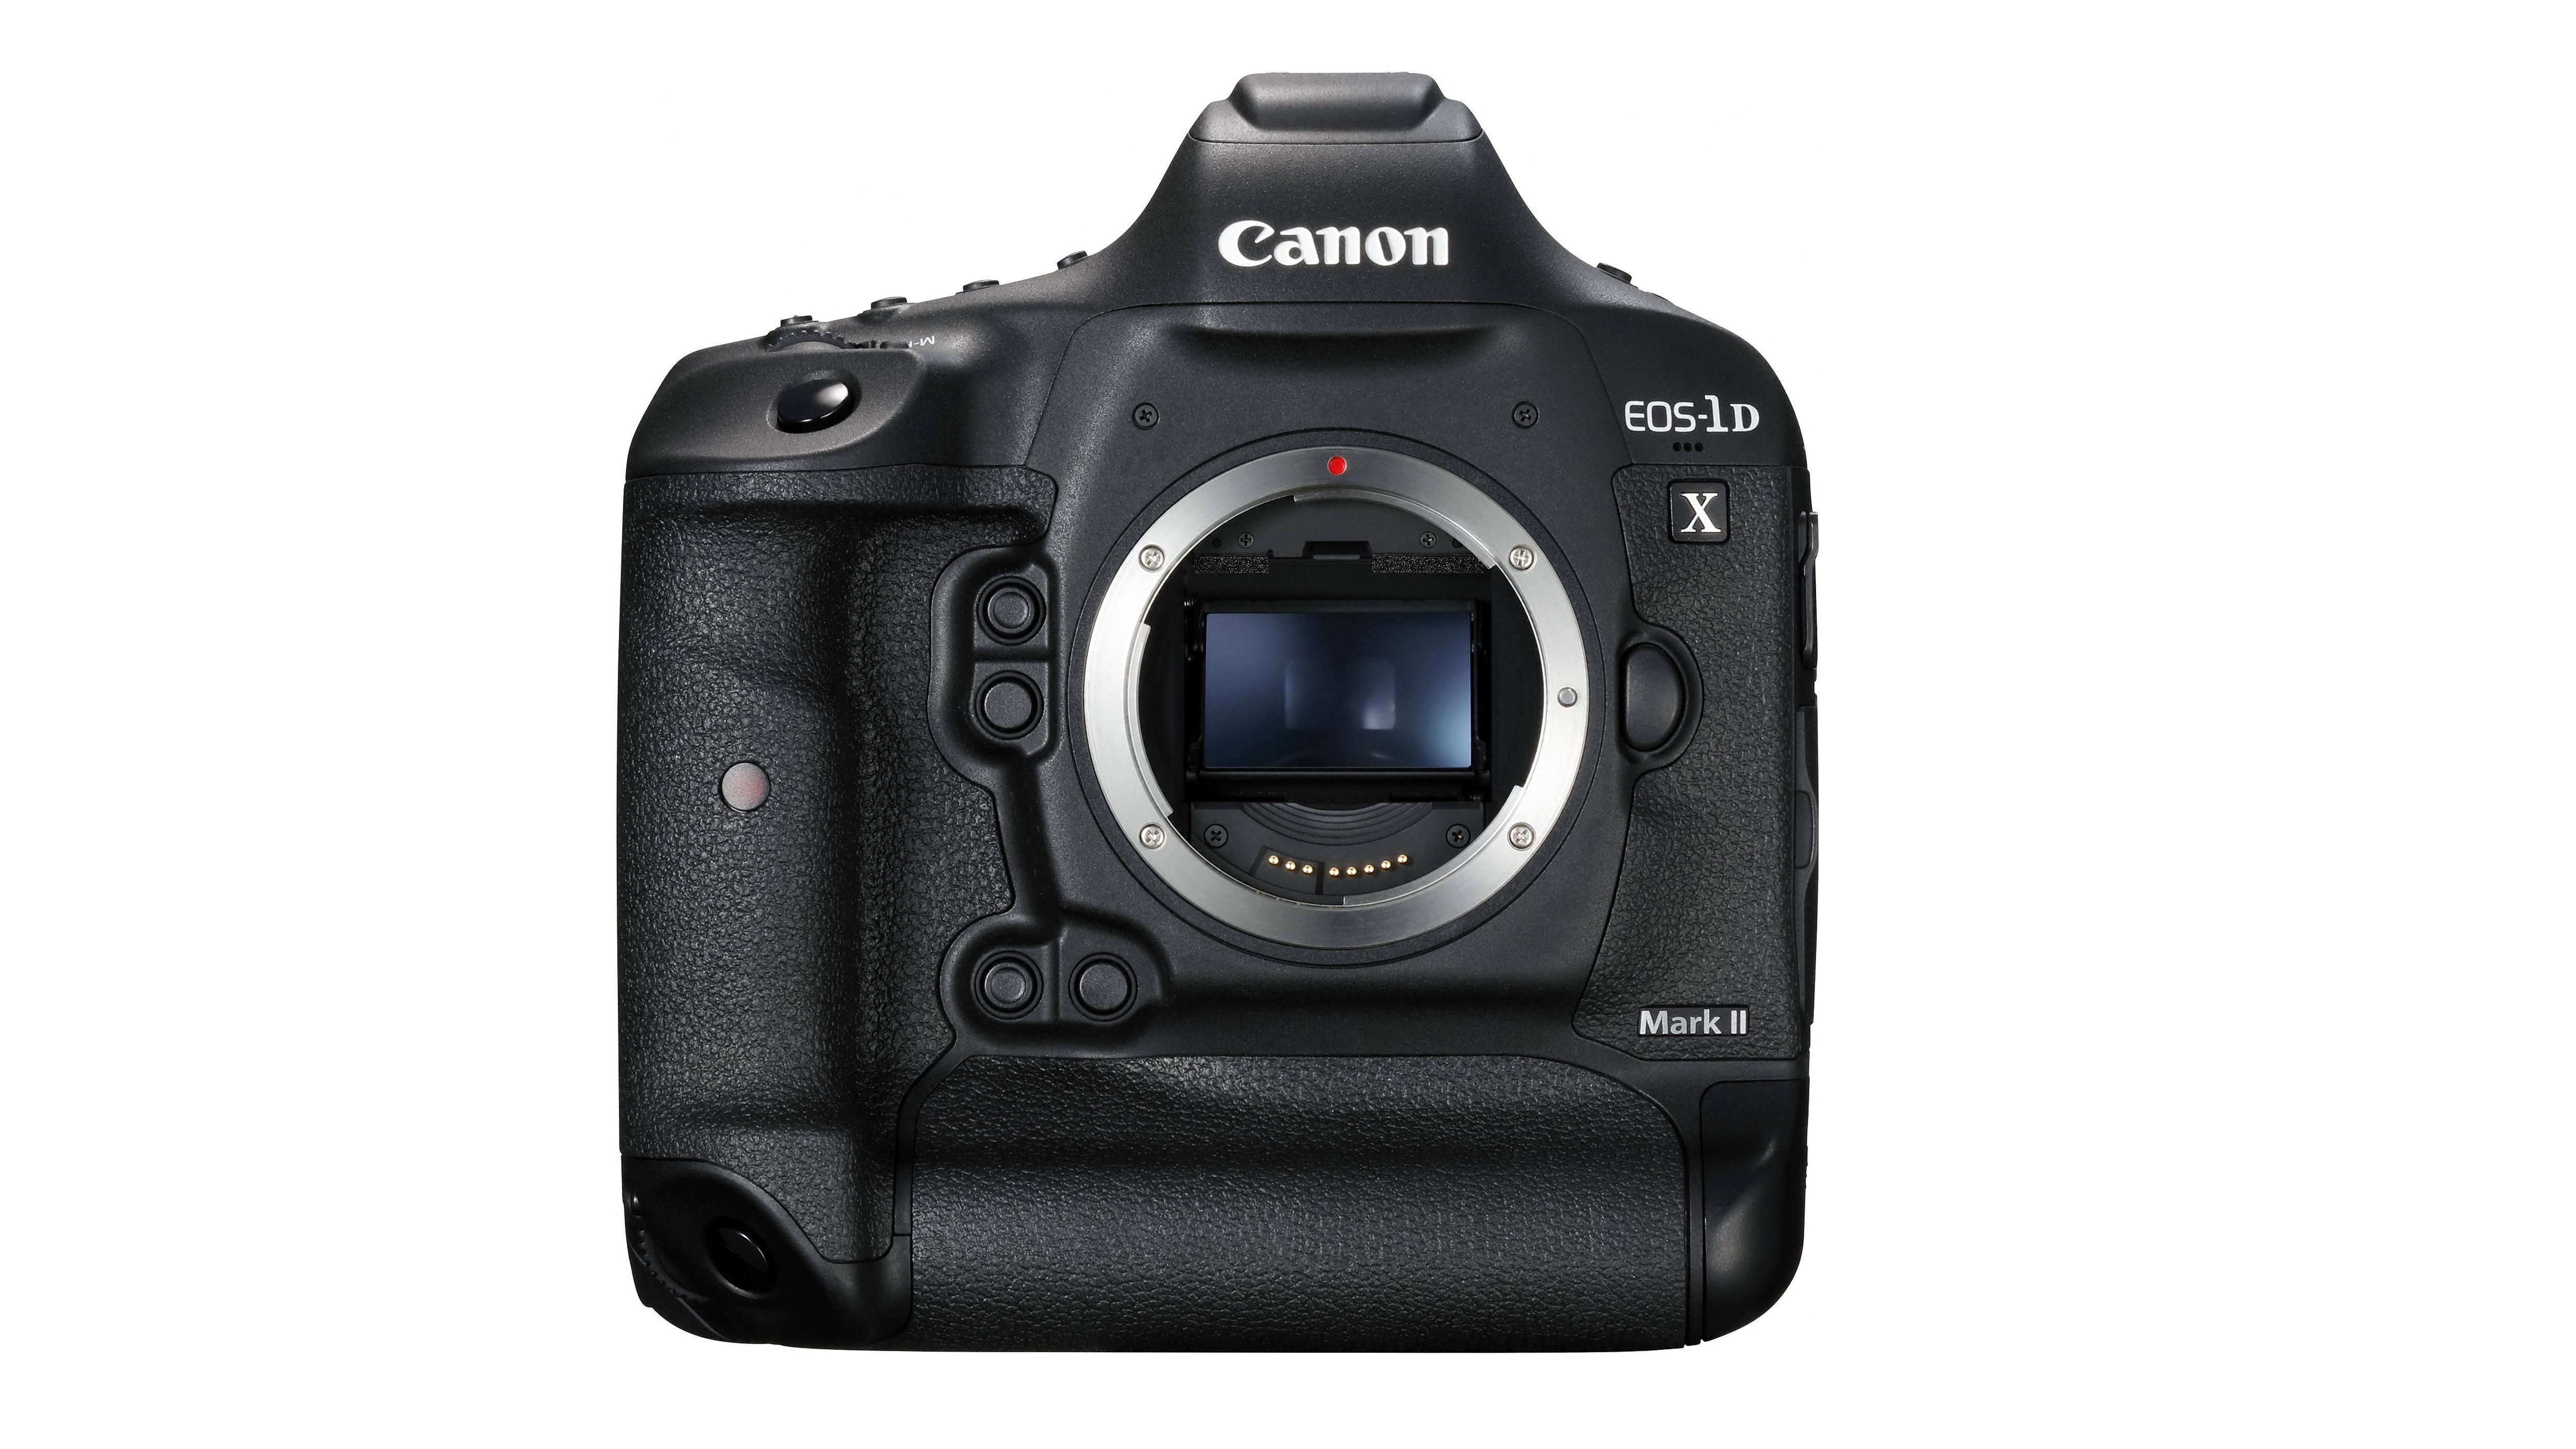 Canon Model Numbers Explained A Guide To Canons Odd Dslr Camera Eos 760d Body Only 760 Bo Naming System Expert Reviews